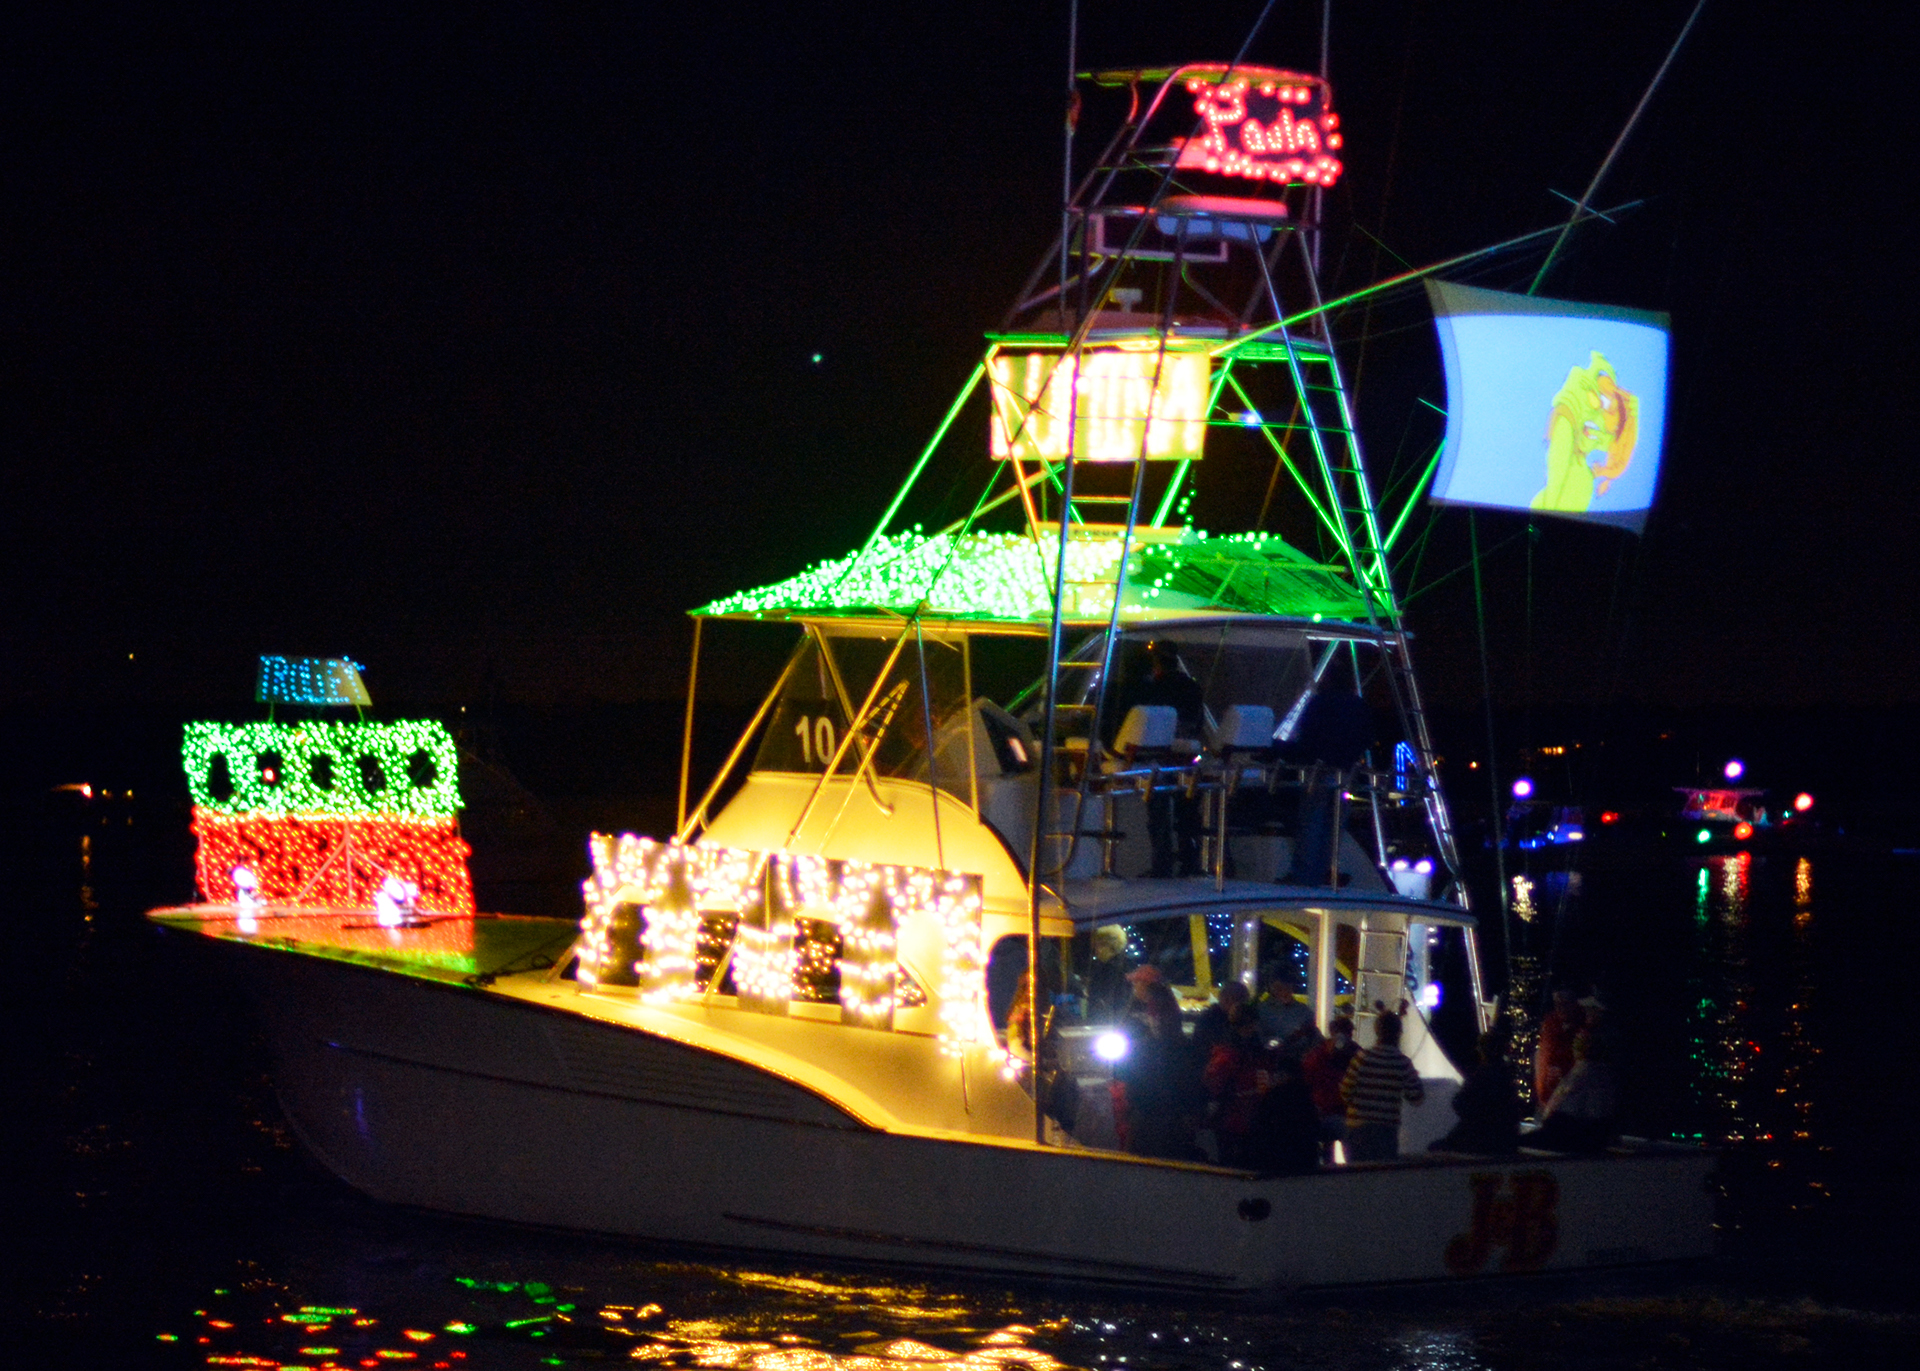 "<div class=""meta image-caption""><div class=""origin-logo origin-image none""><span>none</span></div><span class=""caption-text"">2017 NC Holiday Flotilla Best in Show Award winner (Credit: Beth W. Hedgepeth)</span></div>"